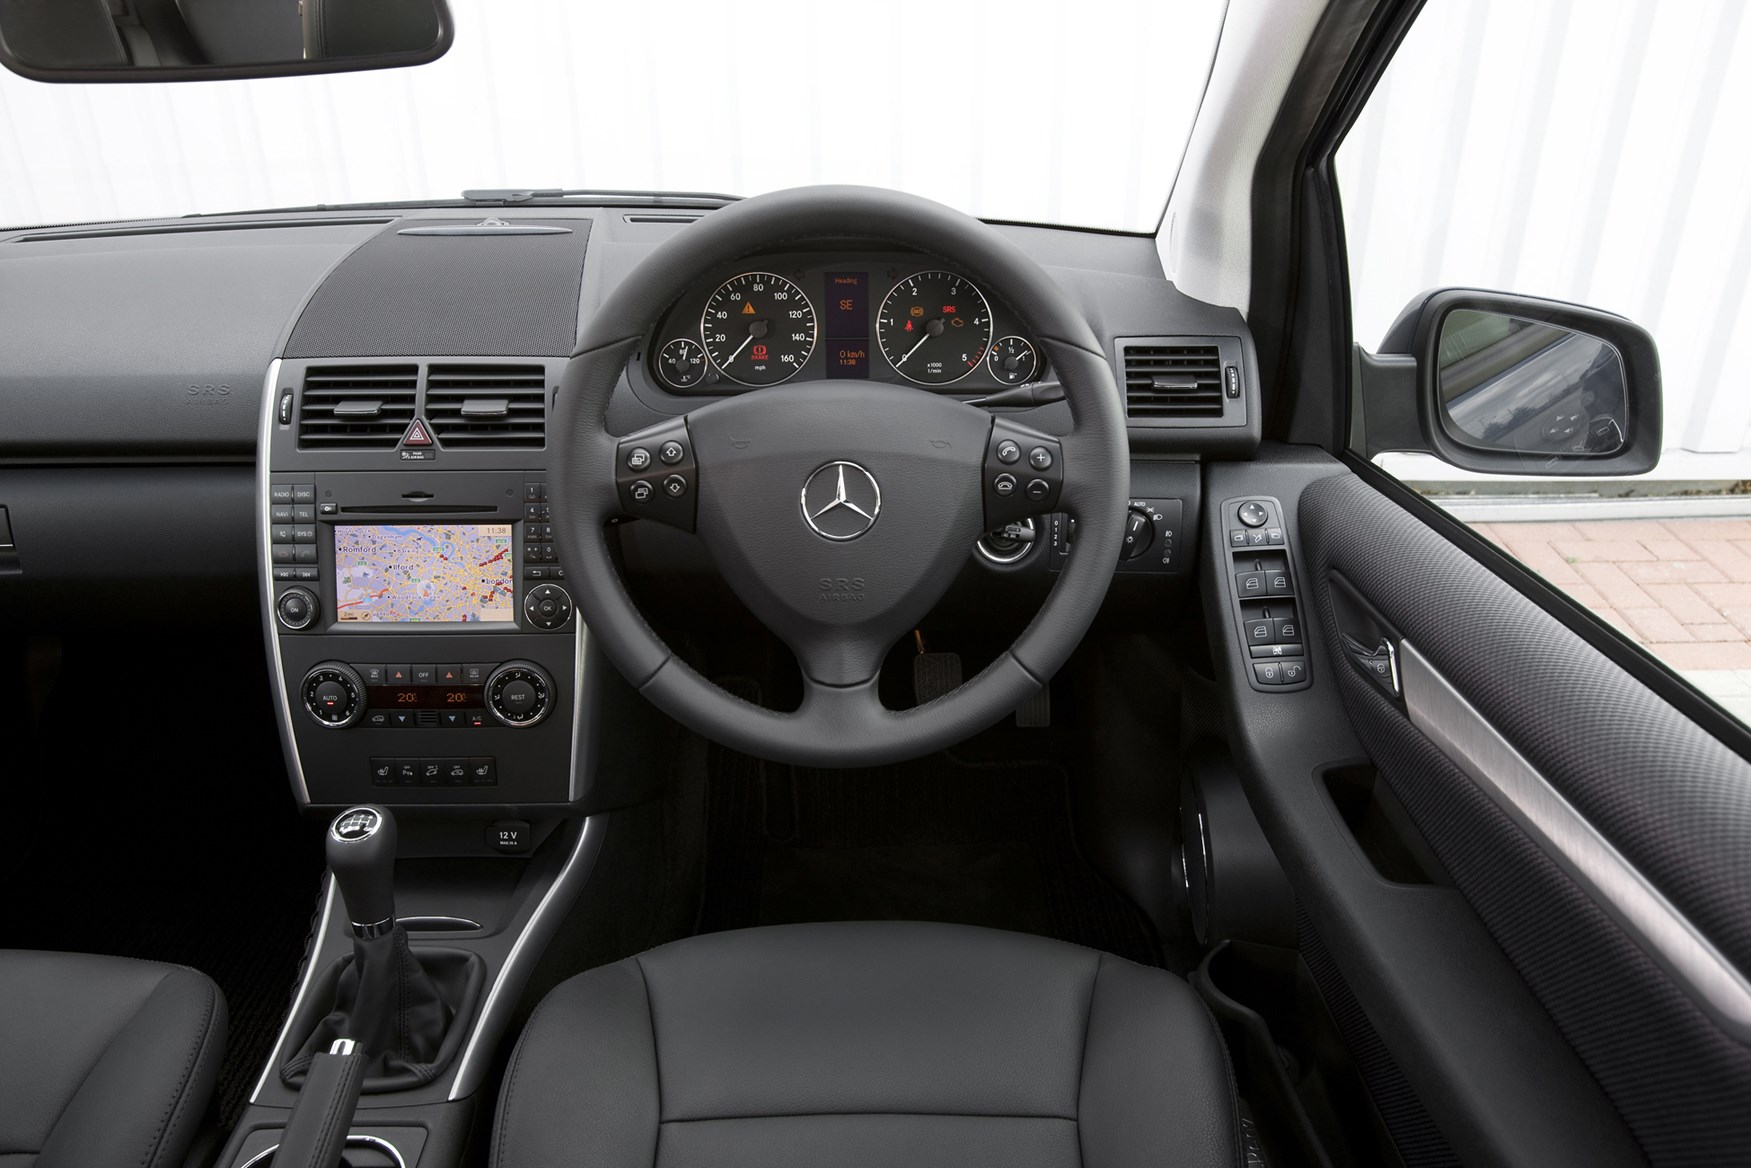 Used Mercedes-Benz A-Class Hatchback (2005 - 2012) Review ...